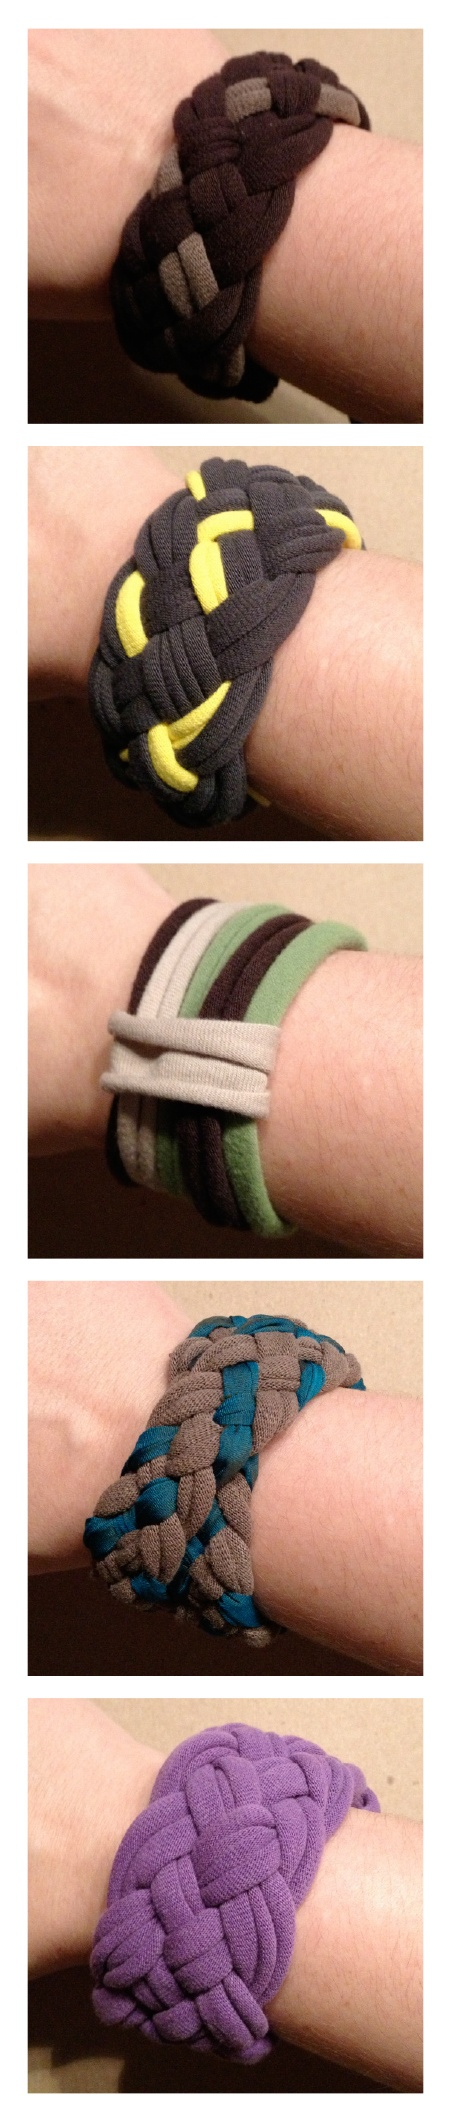 so many options for braided t-shirt cuffs/bracelets